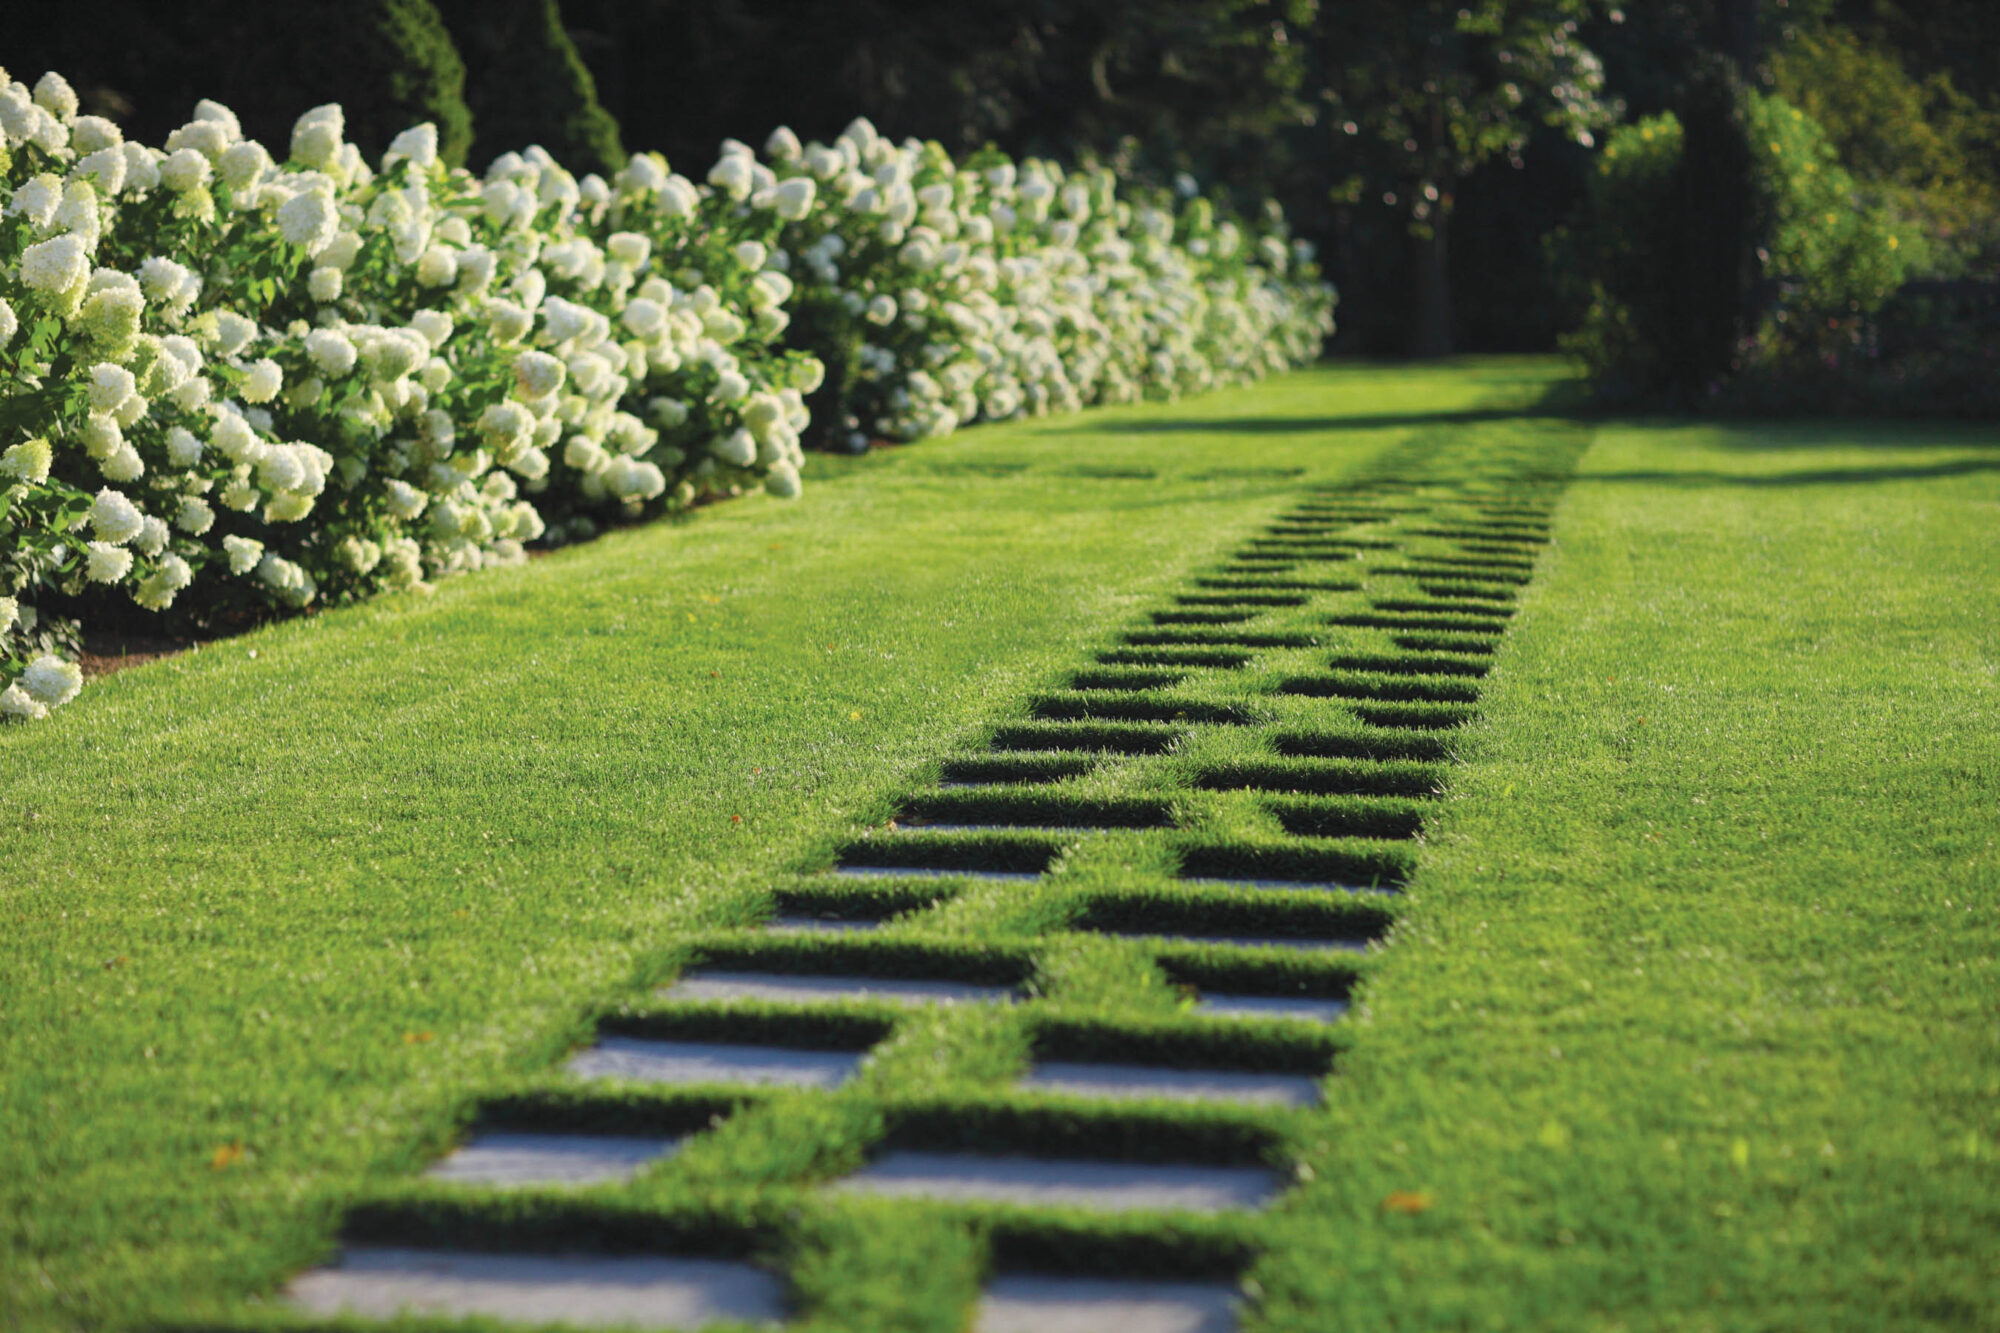 stone walkway in grass